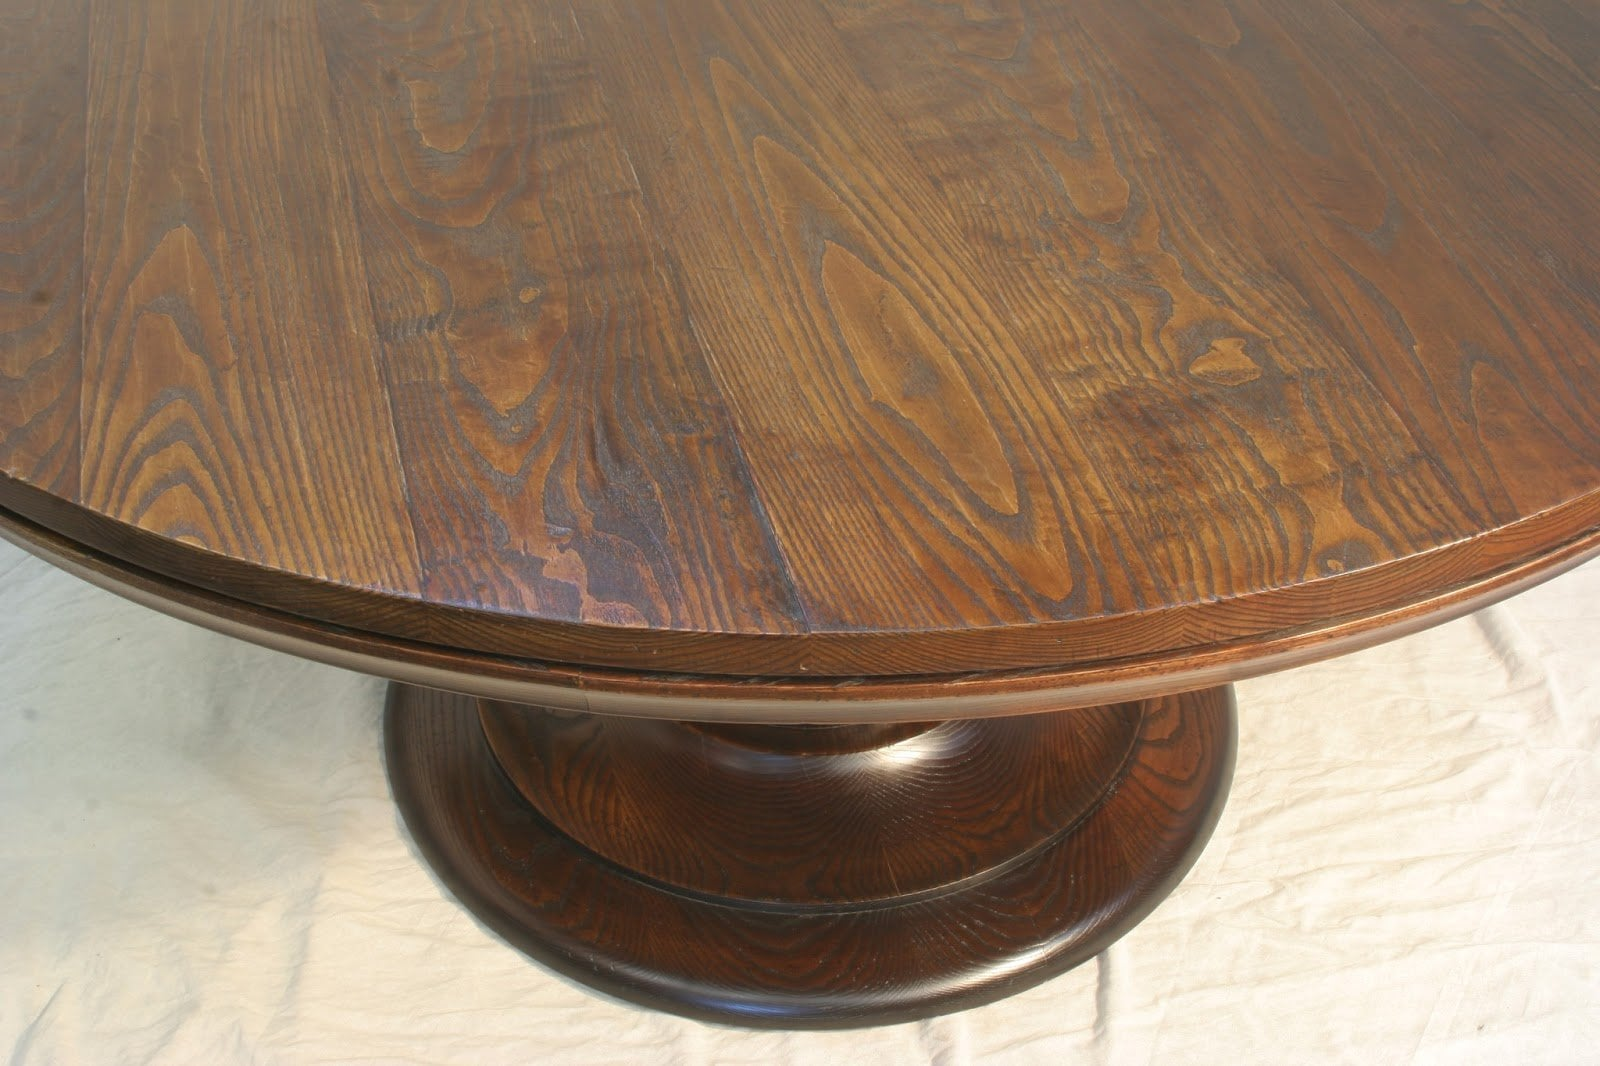 60 Inch Round Dining Table Seats How Many